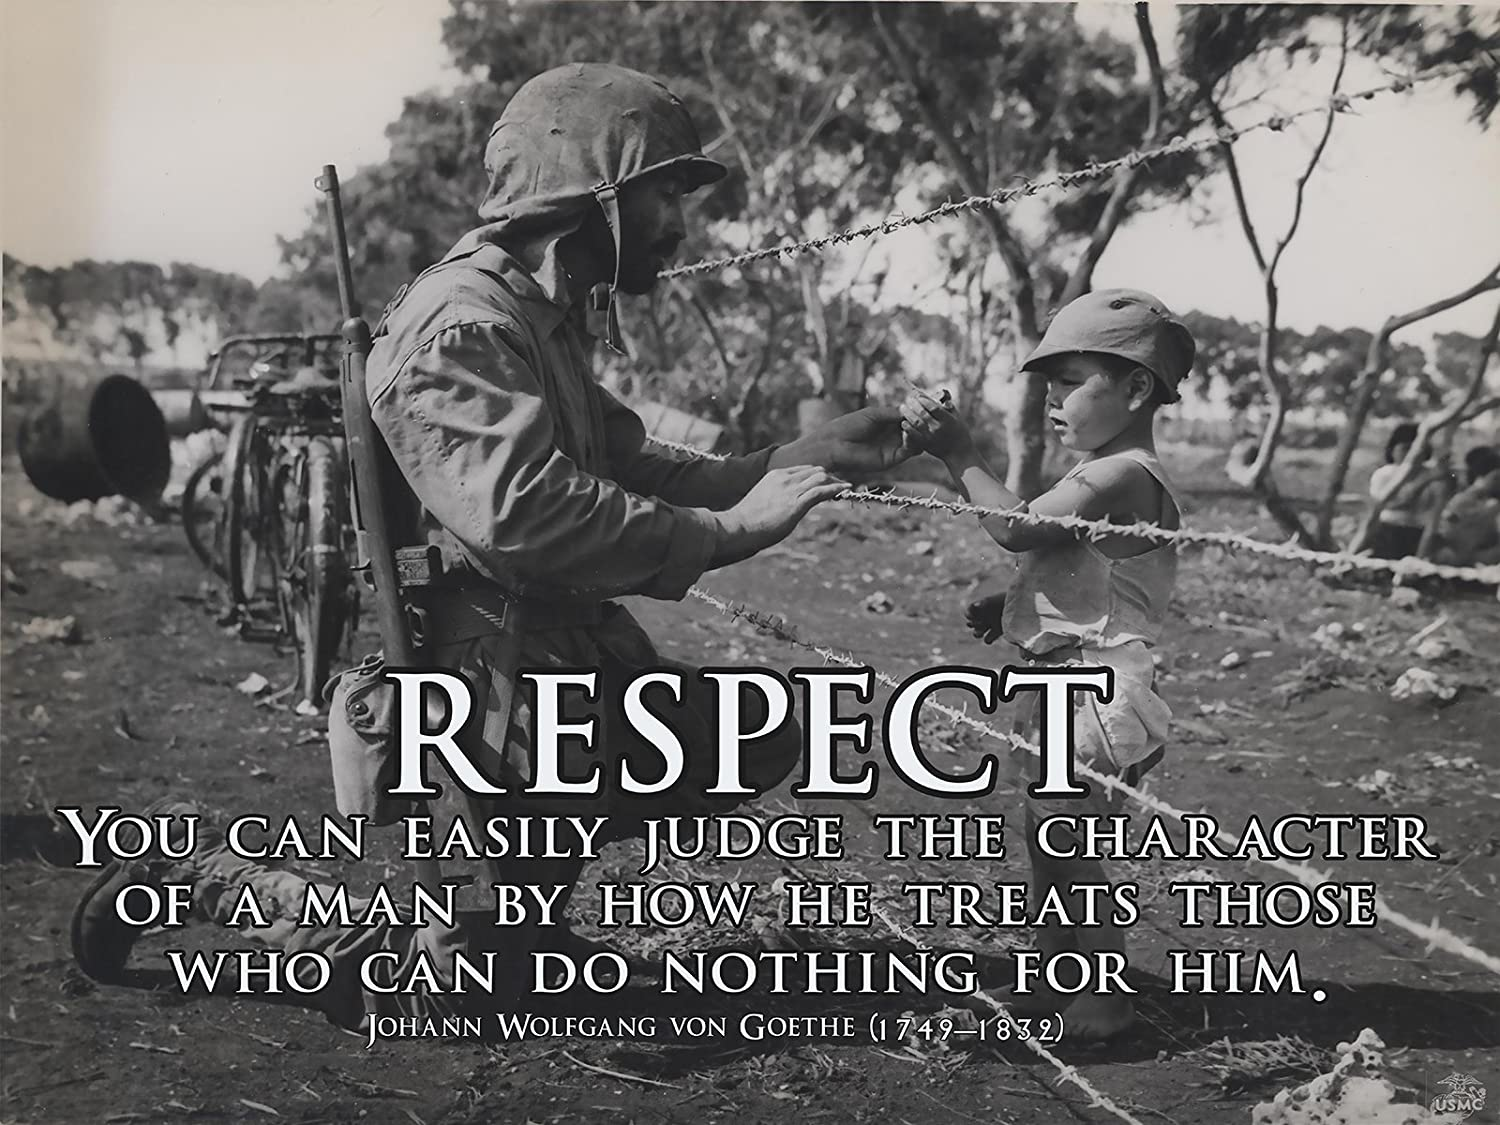 Amazon.com: Respect Poster Military Motivation Poster ...